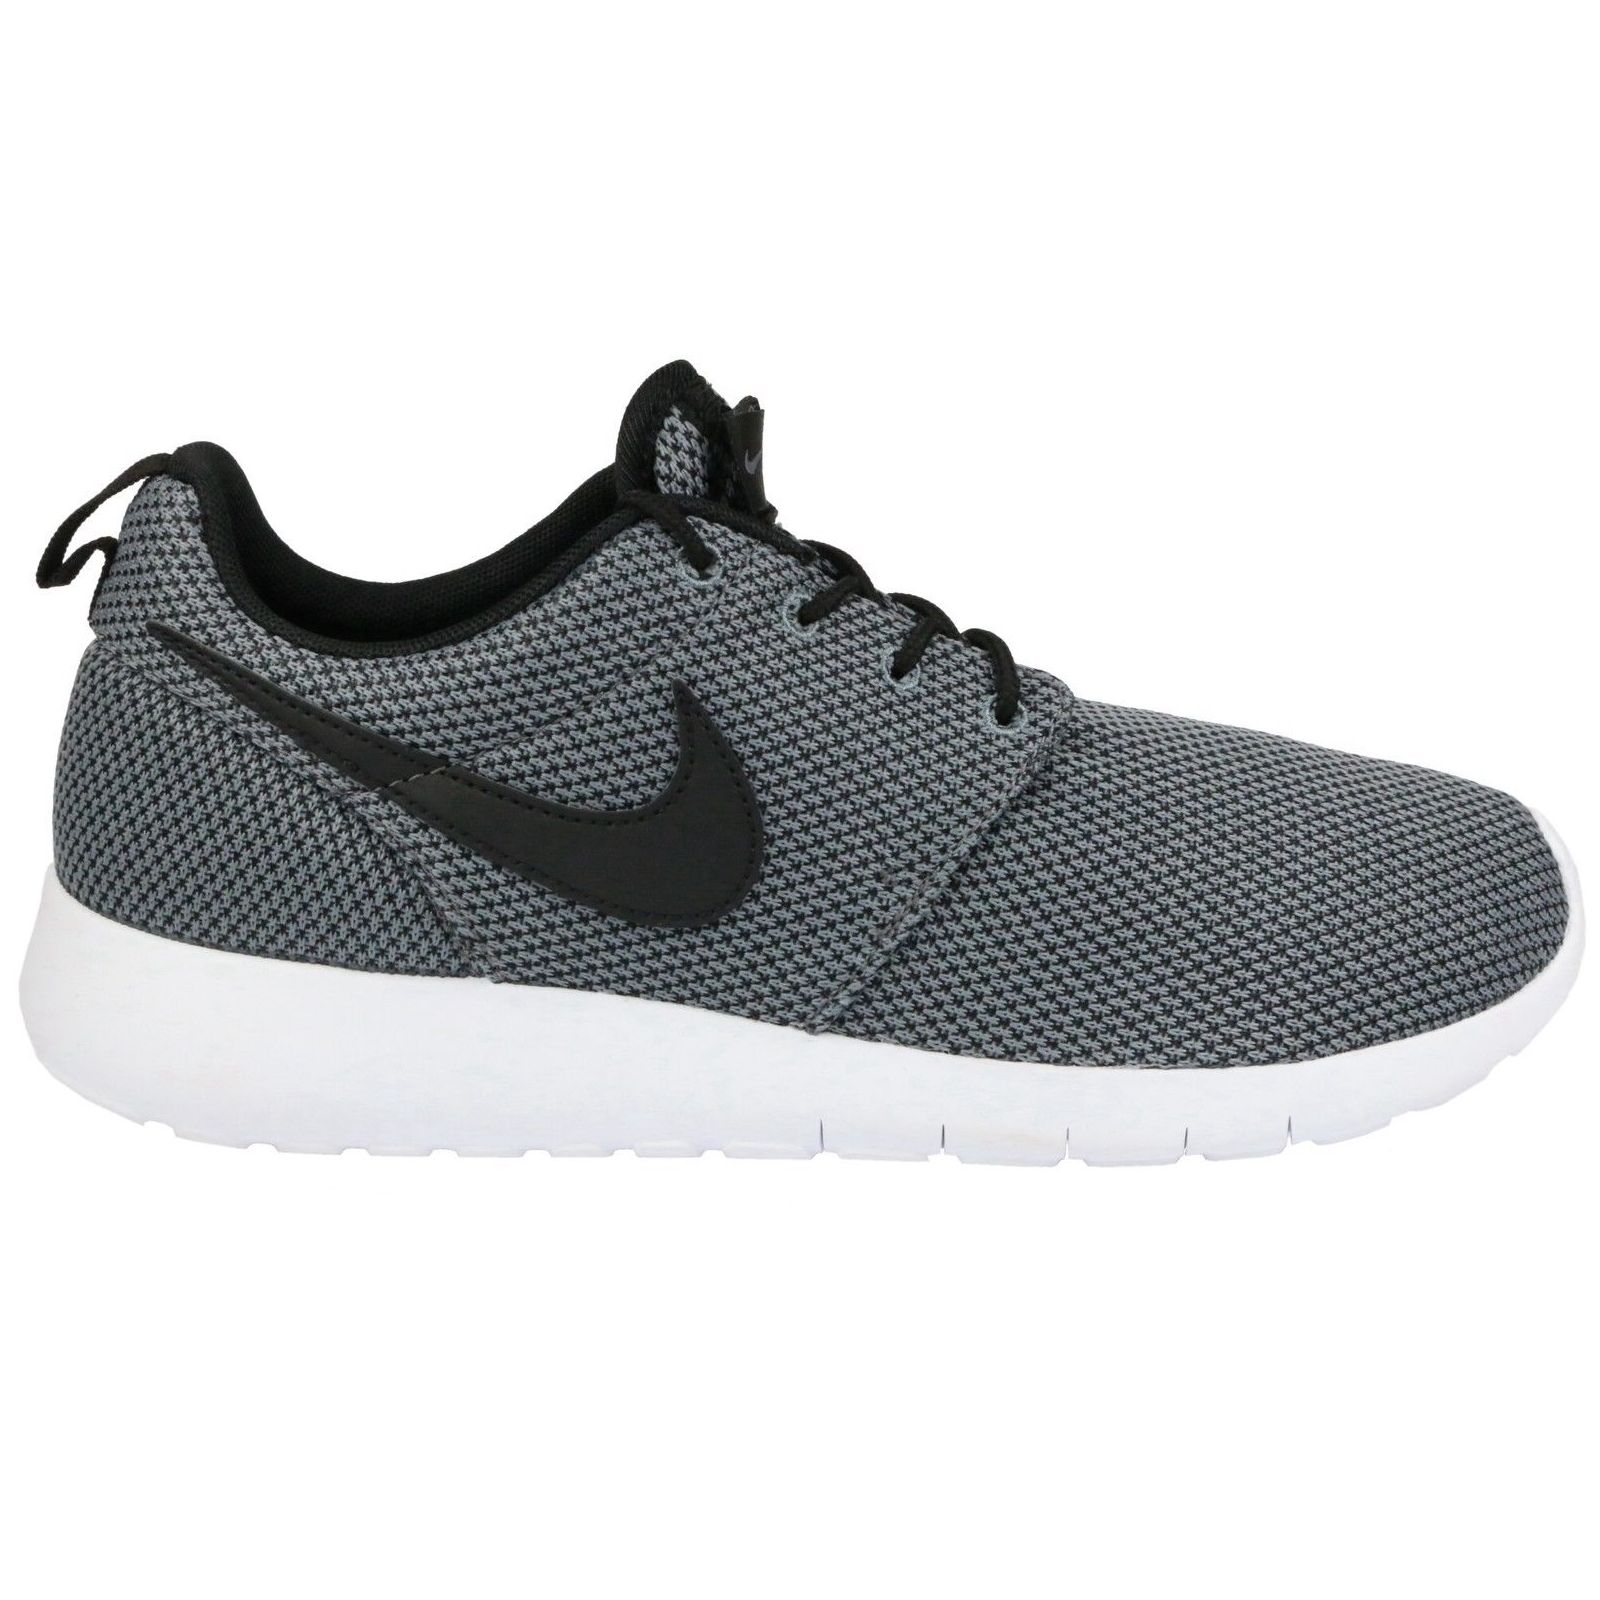 Nike-Roshe-One-GS-Shoes-Trainers-Run-Rosherun-